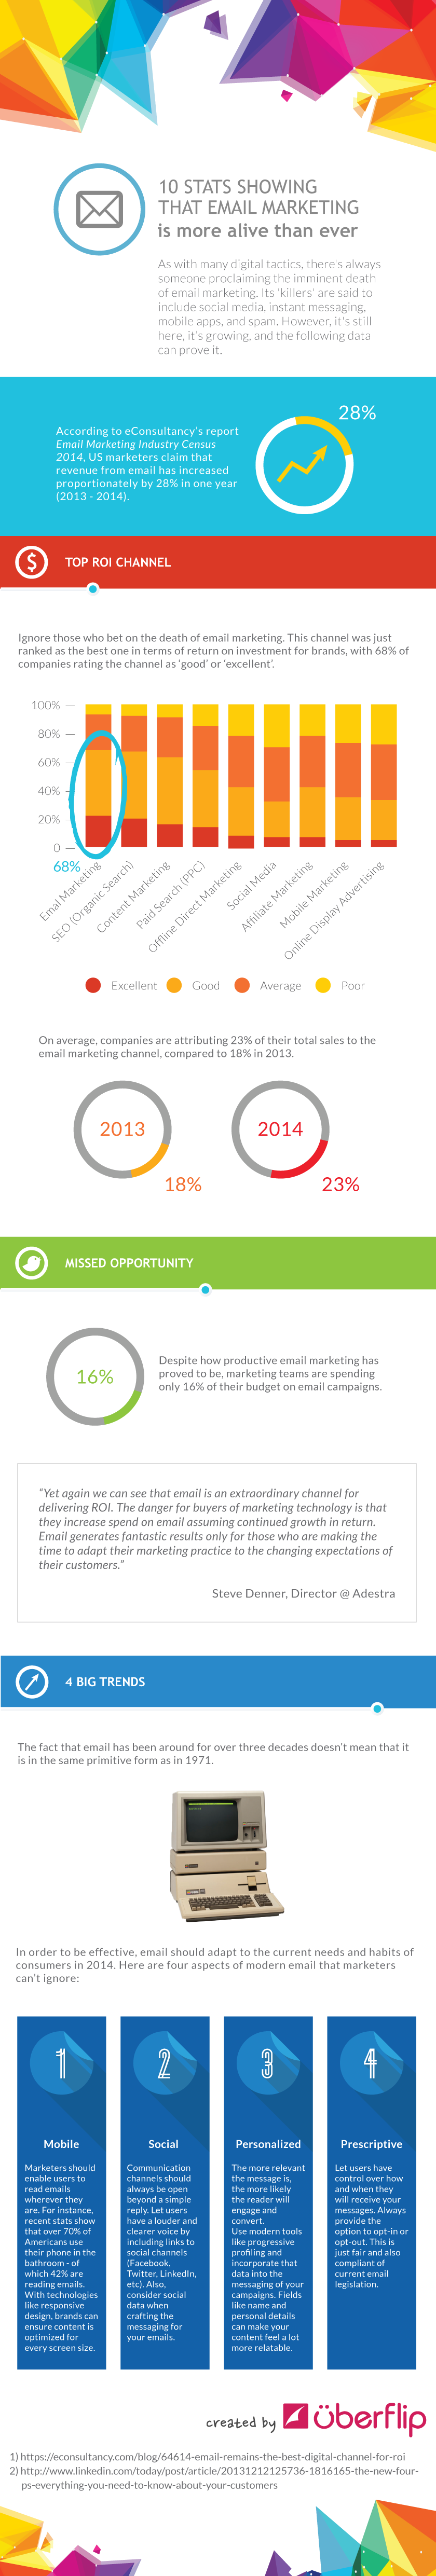 10 Stats Showing that #EmailMarketing Is More Alive Than Ever